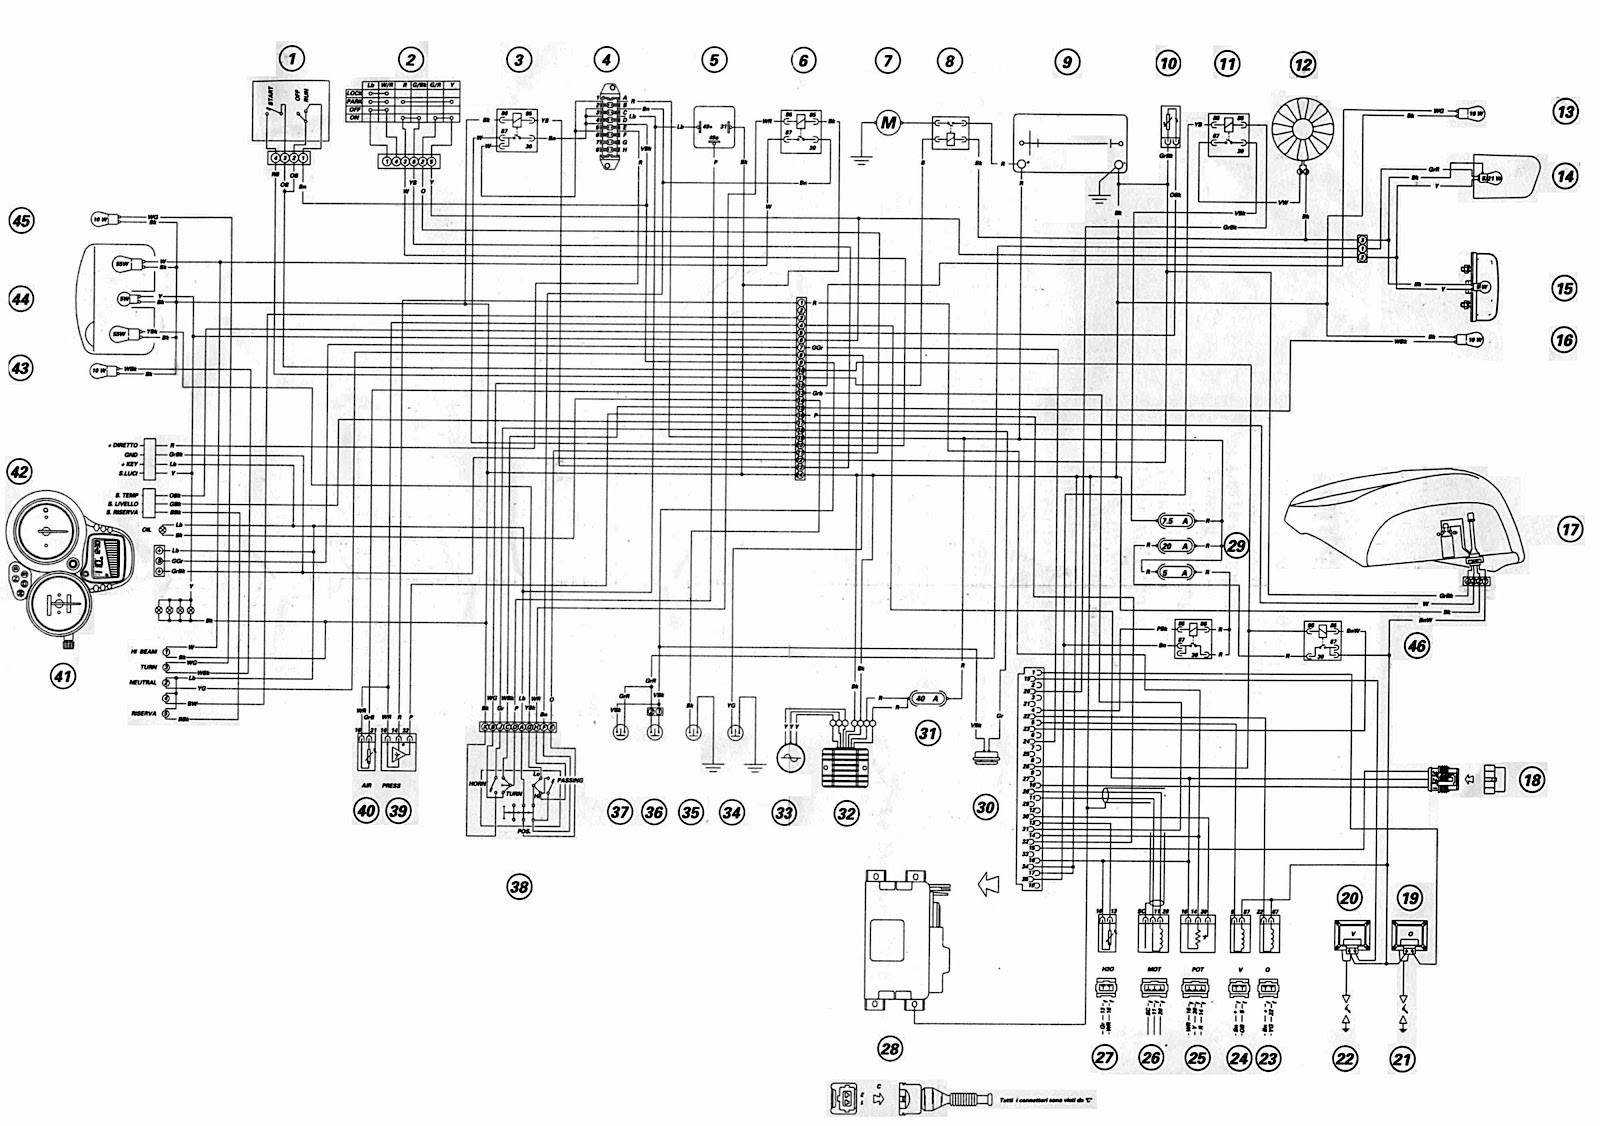 Suzuki X4 Motorcycle Wiring Diagram Library Sv650 Big Dog Ignition Diagrams Online Outstanding 125 Pictures